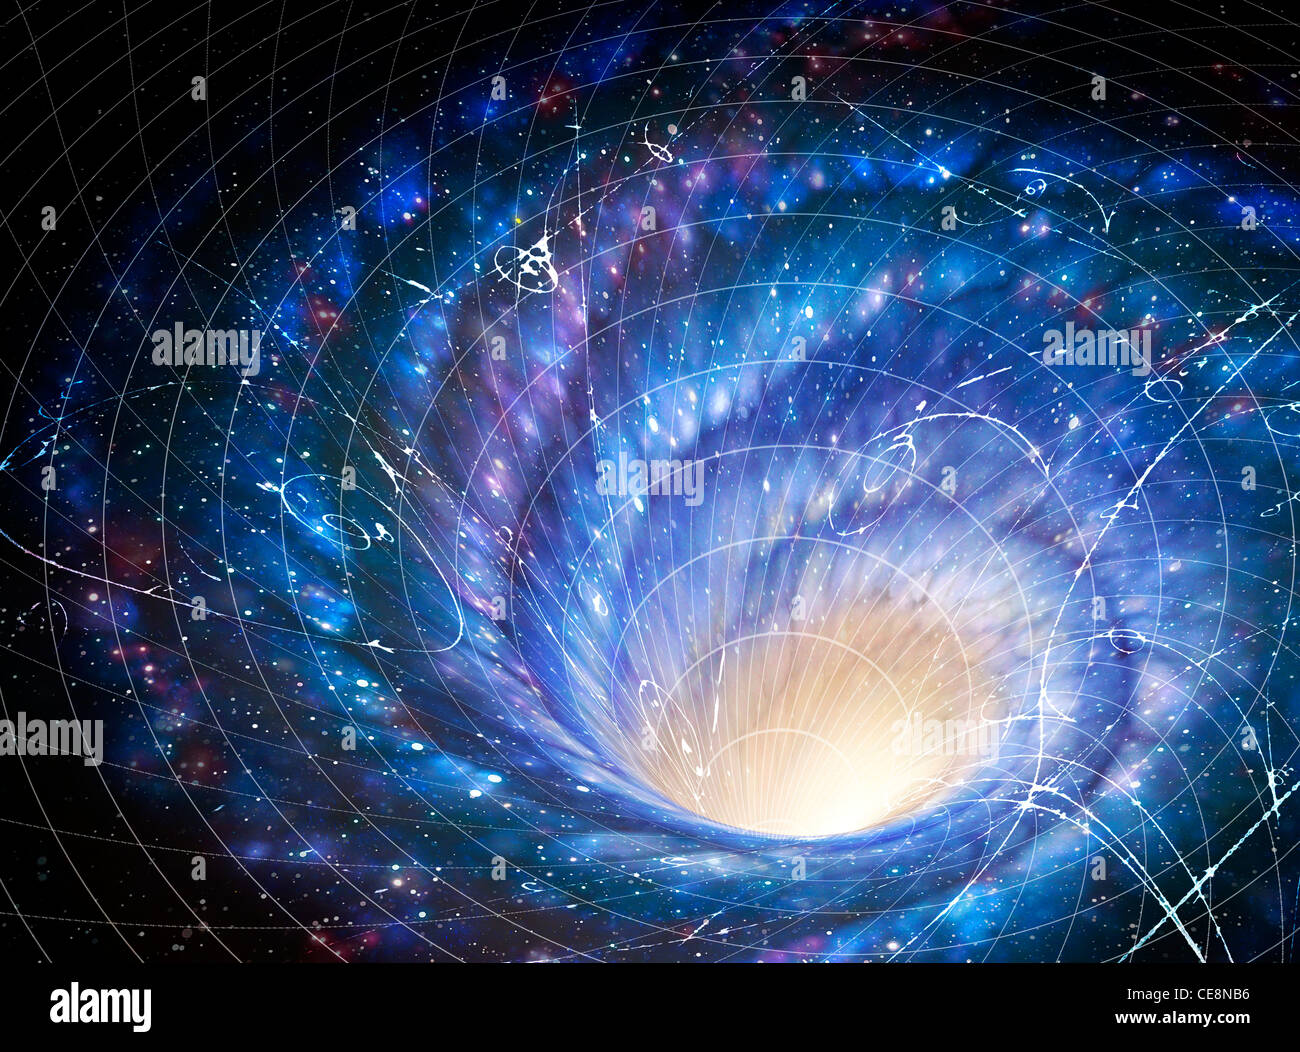 Illustration showing galaxy giant whirlpool in space galaxy's effect on space image shows how gravity galaxy - Stock Image